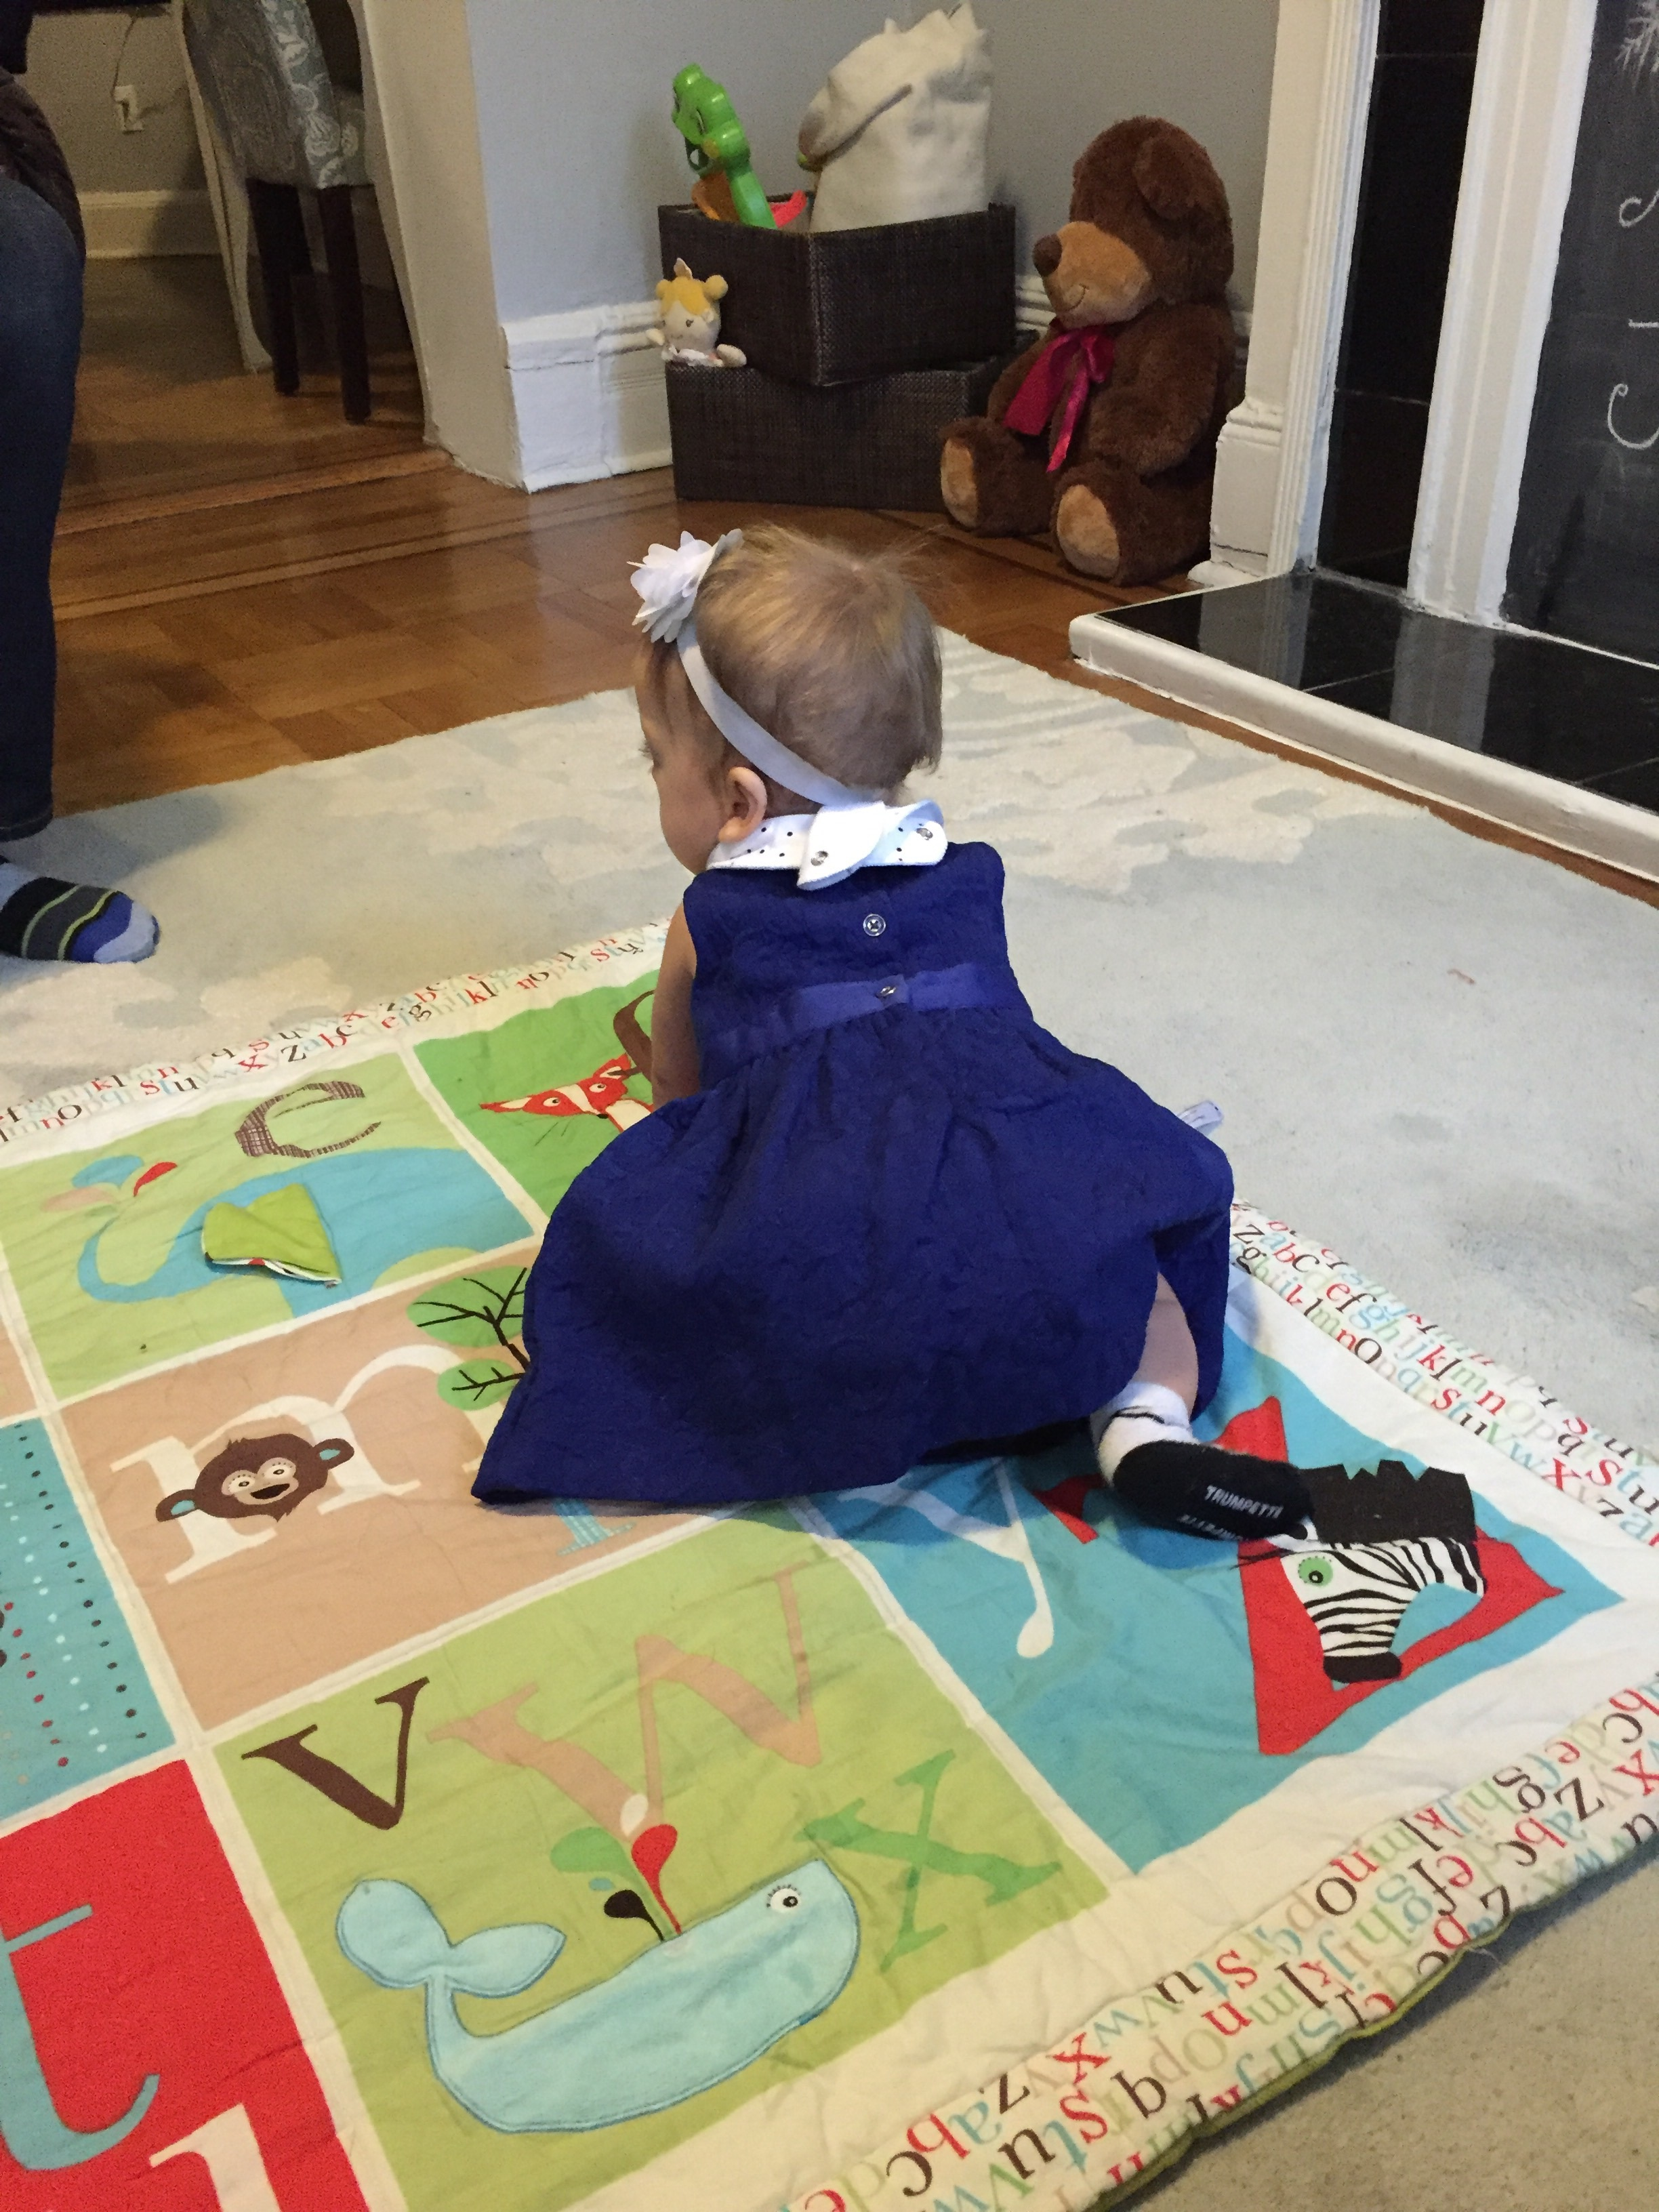 Showing everyone how well she can crawl